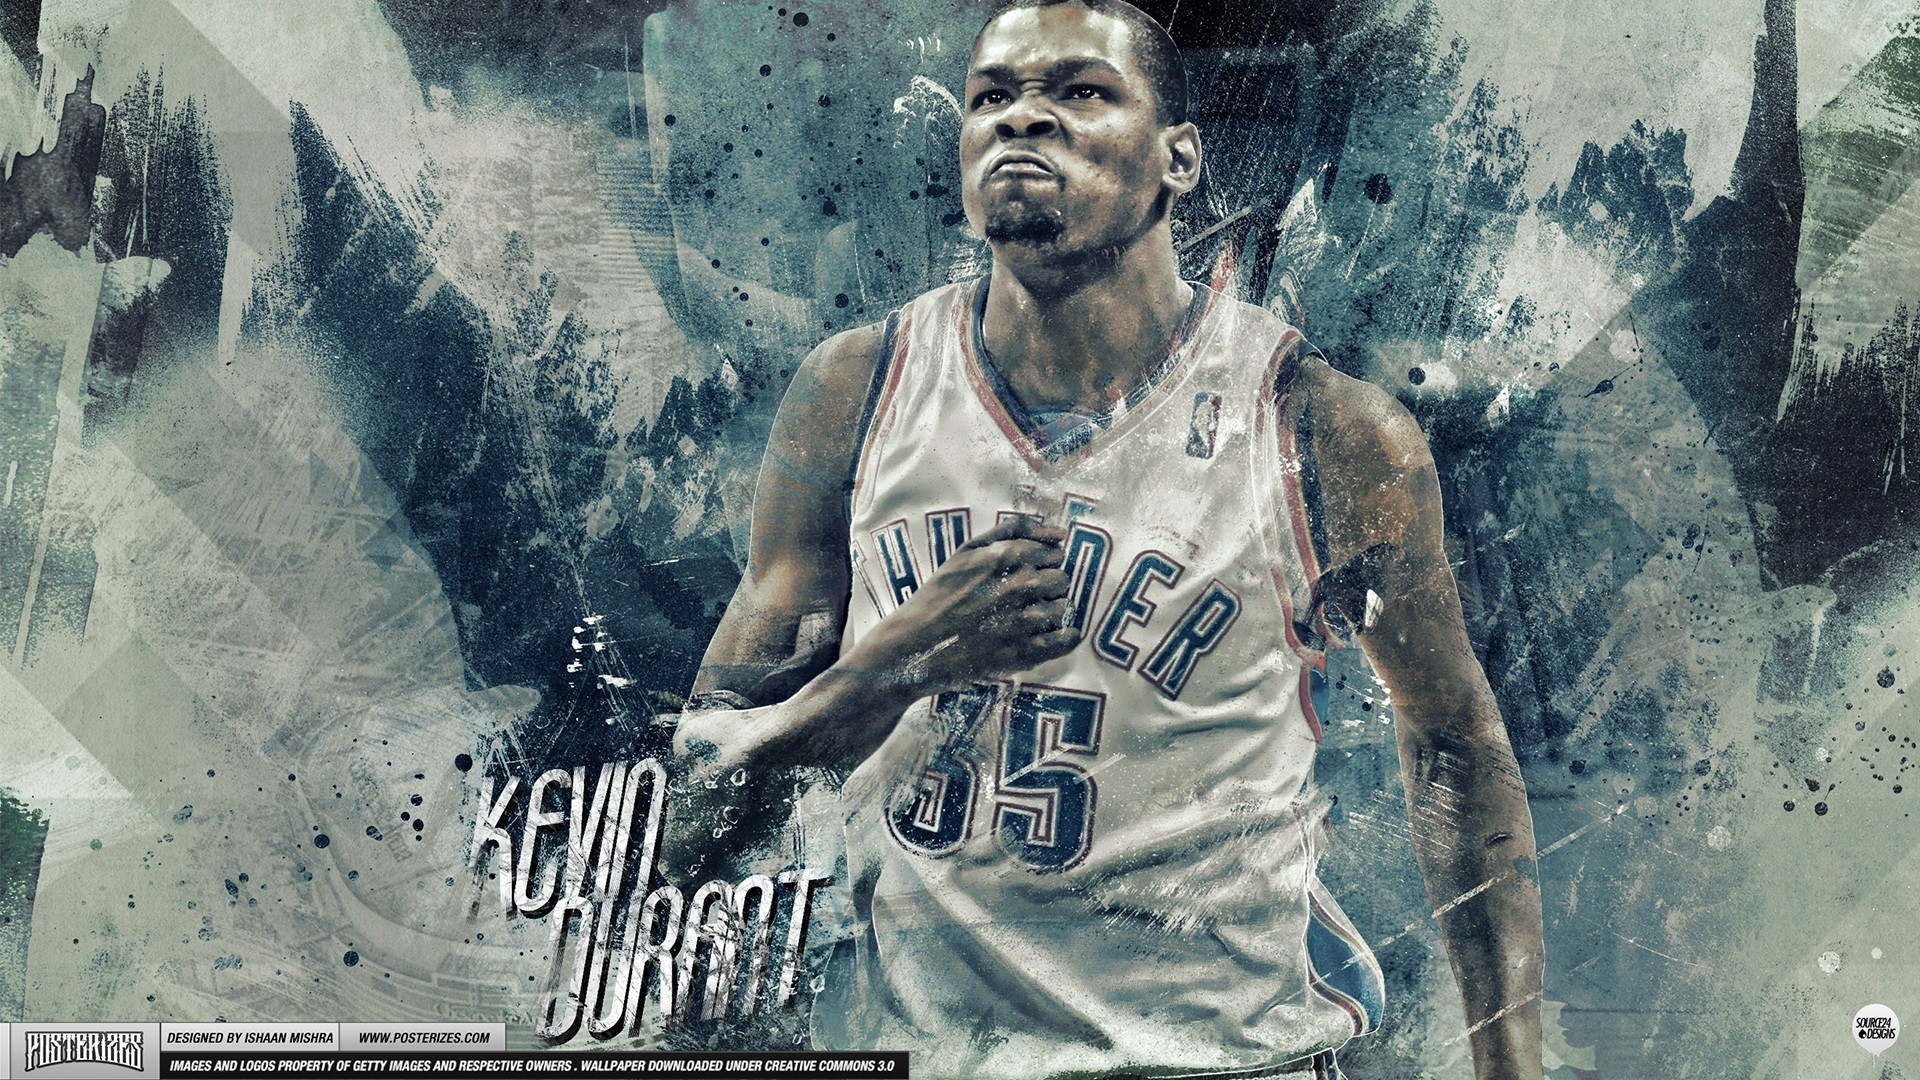 1920x1080  Kevin Durant Russell Westbrook Wallpaper | HD Wallpapers |  Pinterest | Kevin durant, Wallpaper and Wallpaper backgrounds